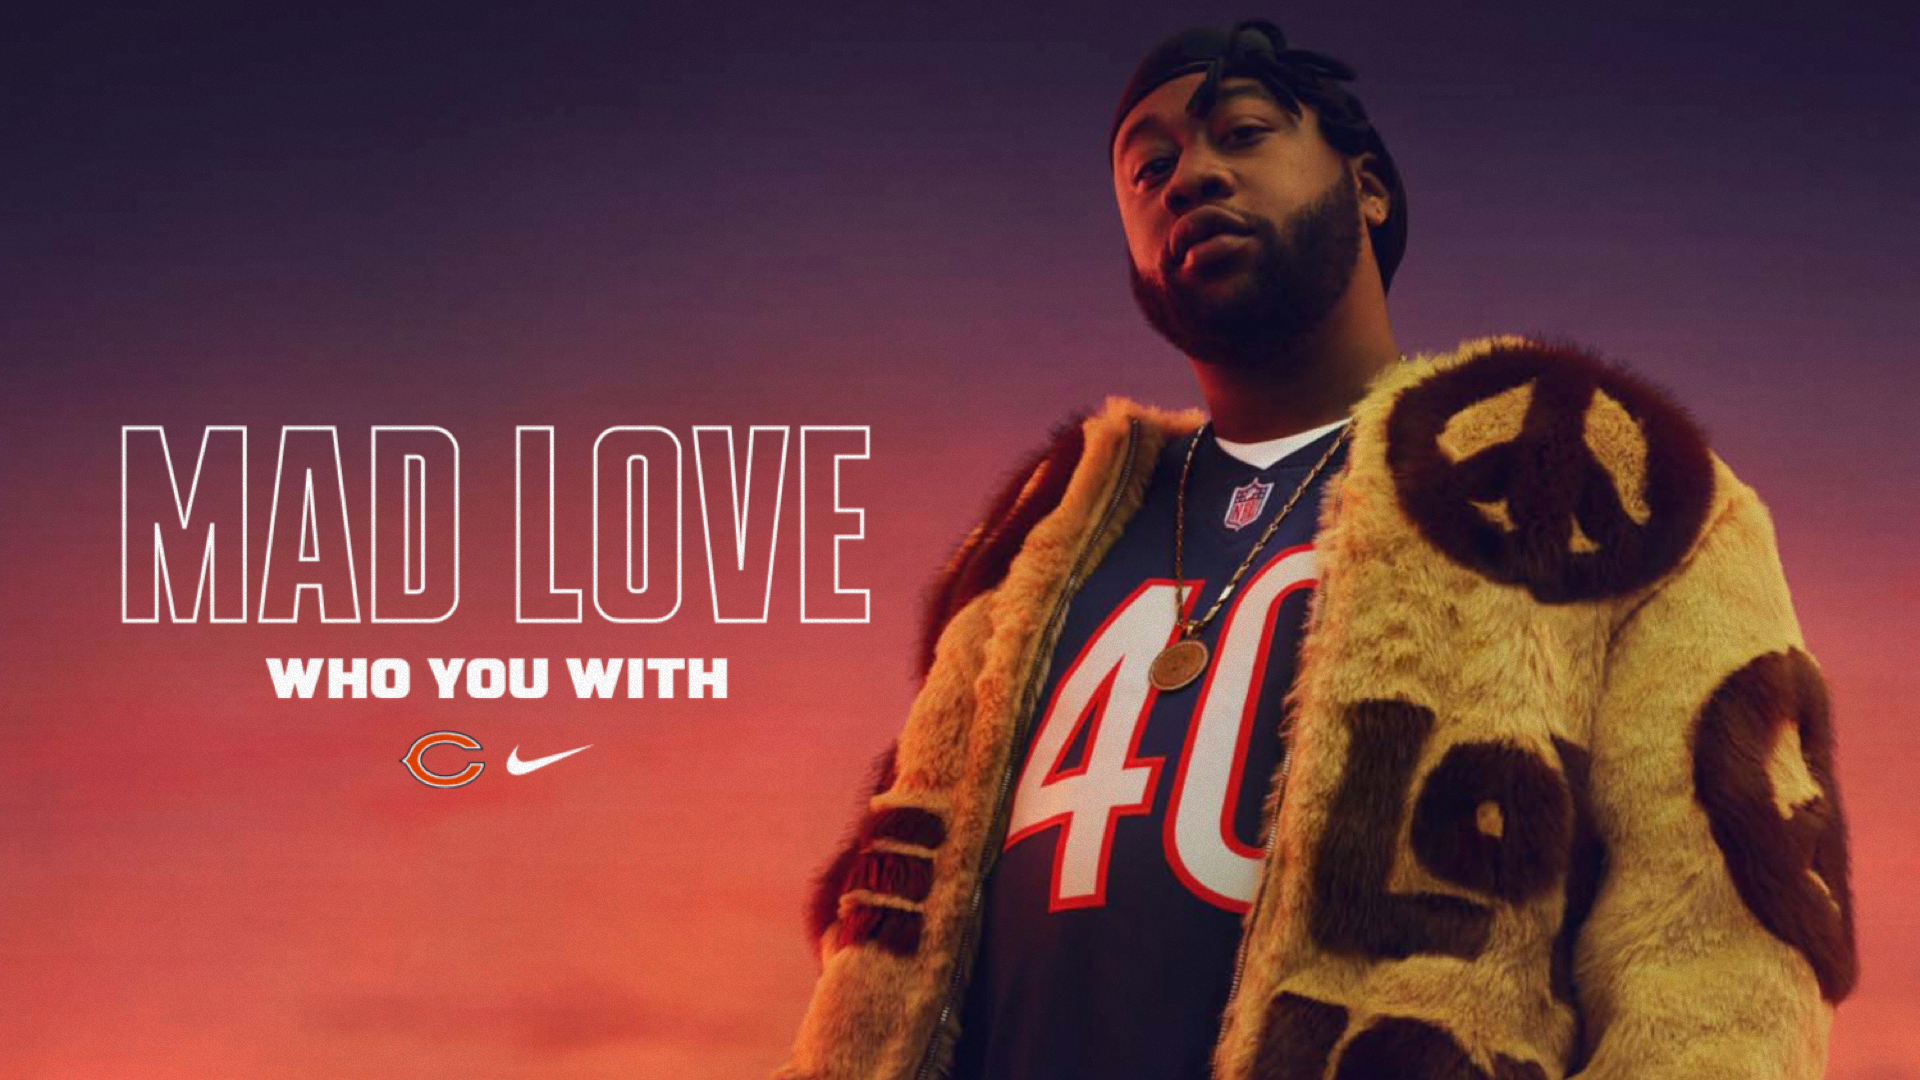 WHO YOU WITH - NIKE FOOTBALL - Historical Research, Market Research, Creative Direction, Campaign Headlines, Experiential, Influencer Identification